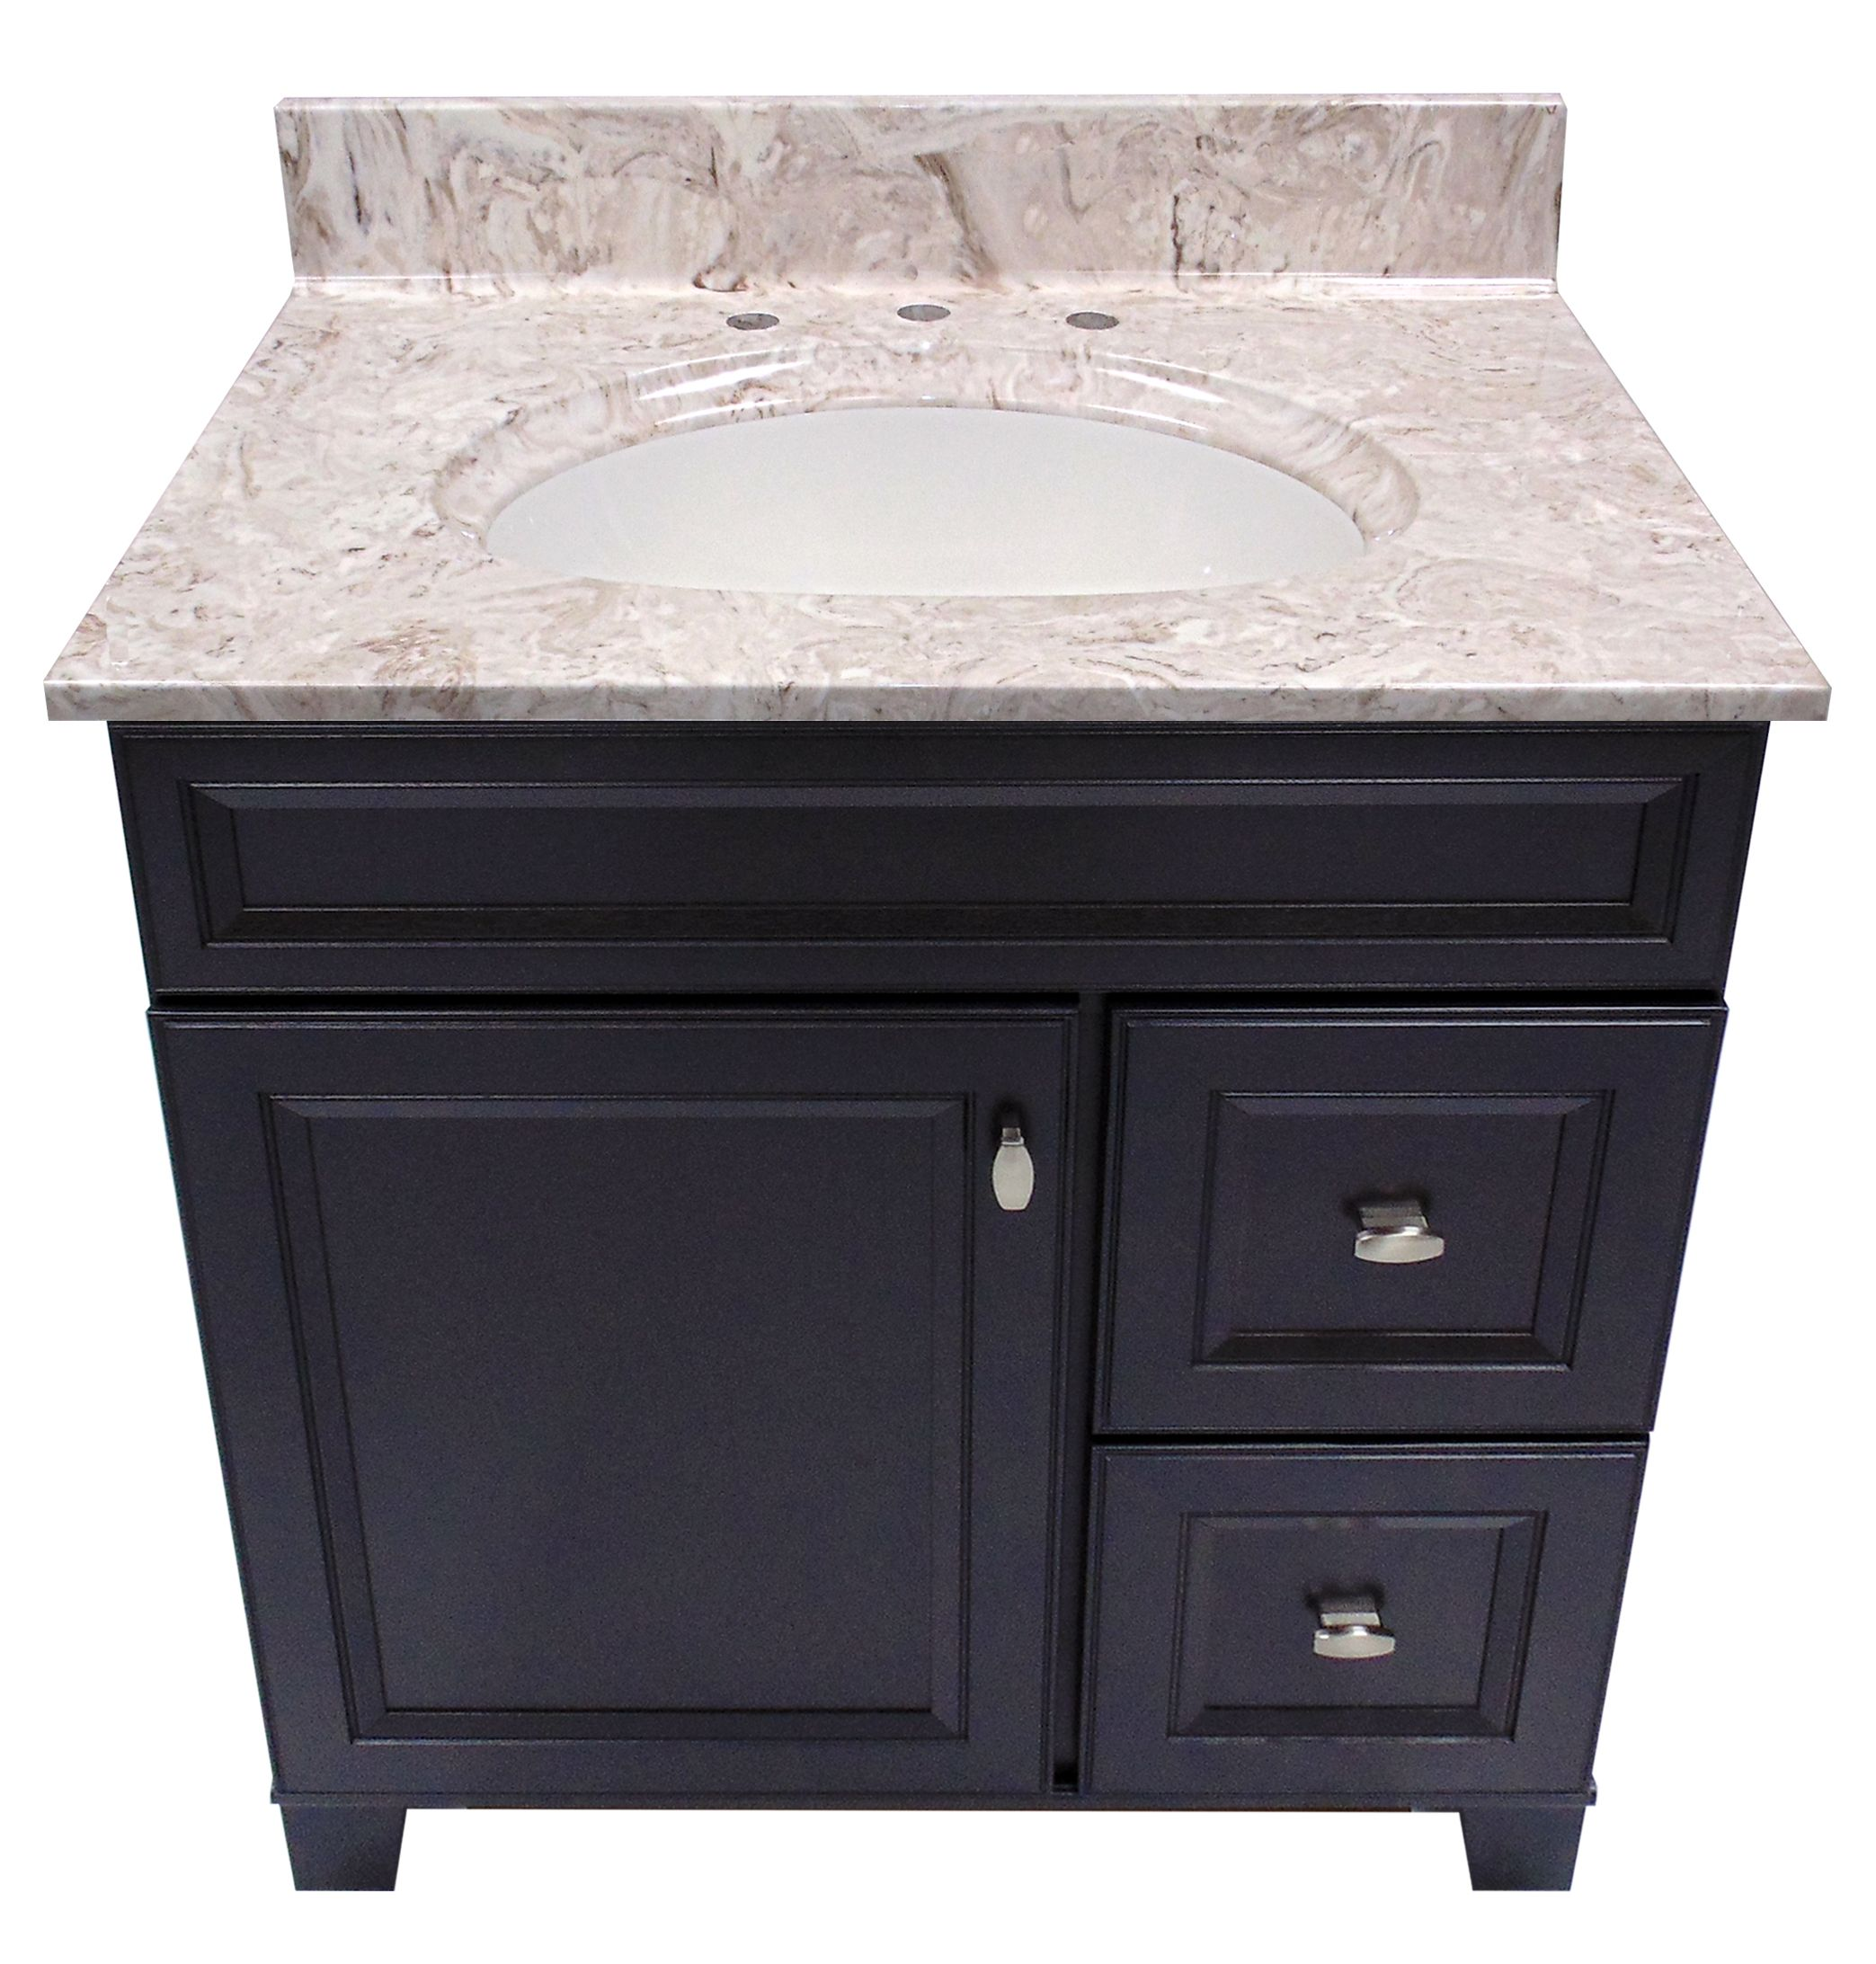 Us Marble Cultured Marble Vanity Top Shown In Brown On White With An Olympus White I Cultured Marble Vanity Tops Cultured Marble Vanity Top Quartz Vanity Tops